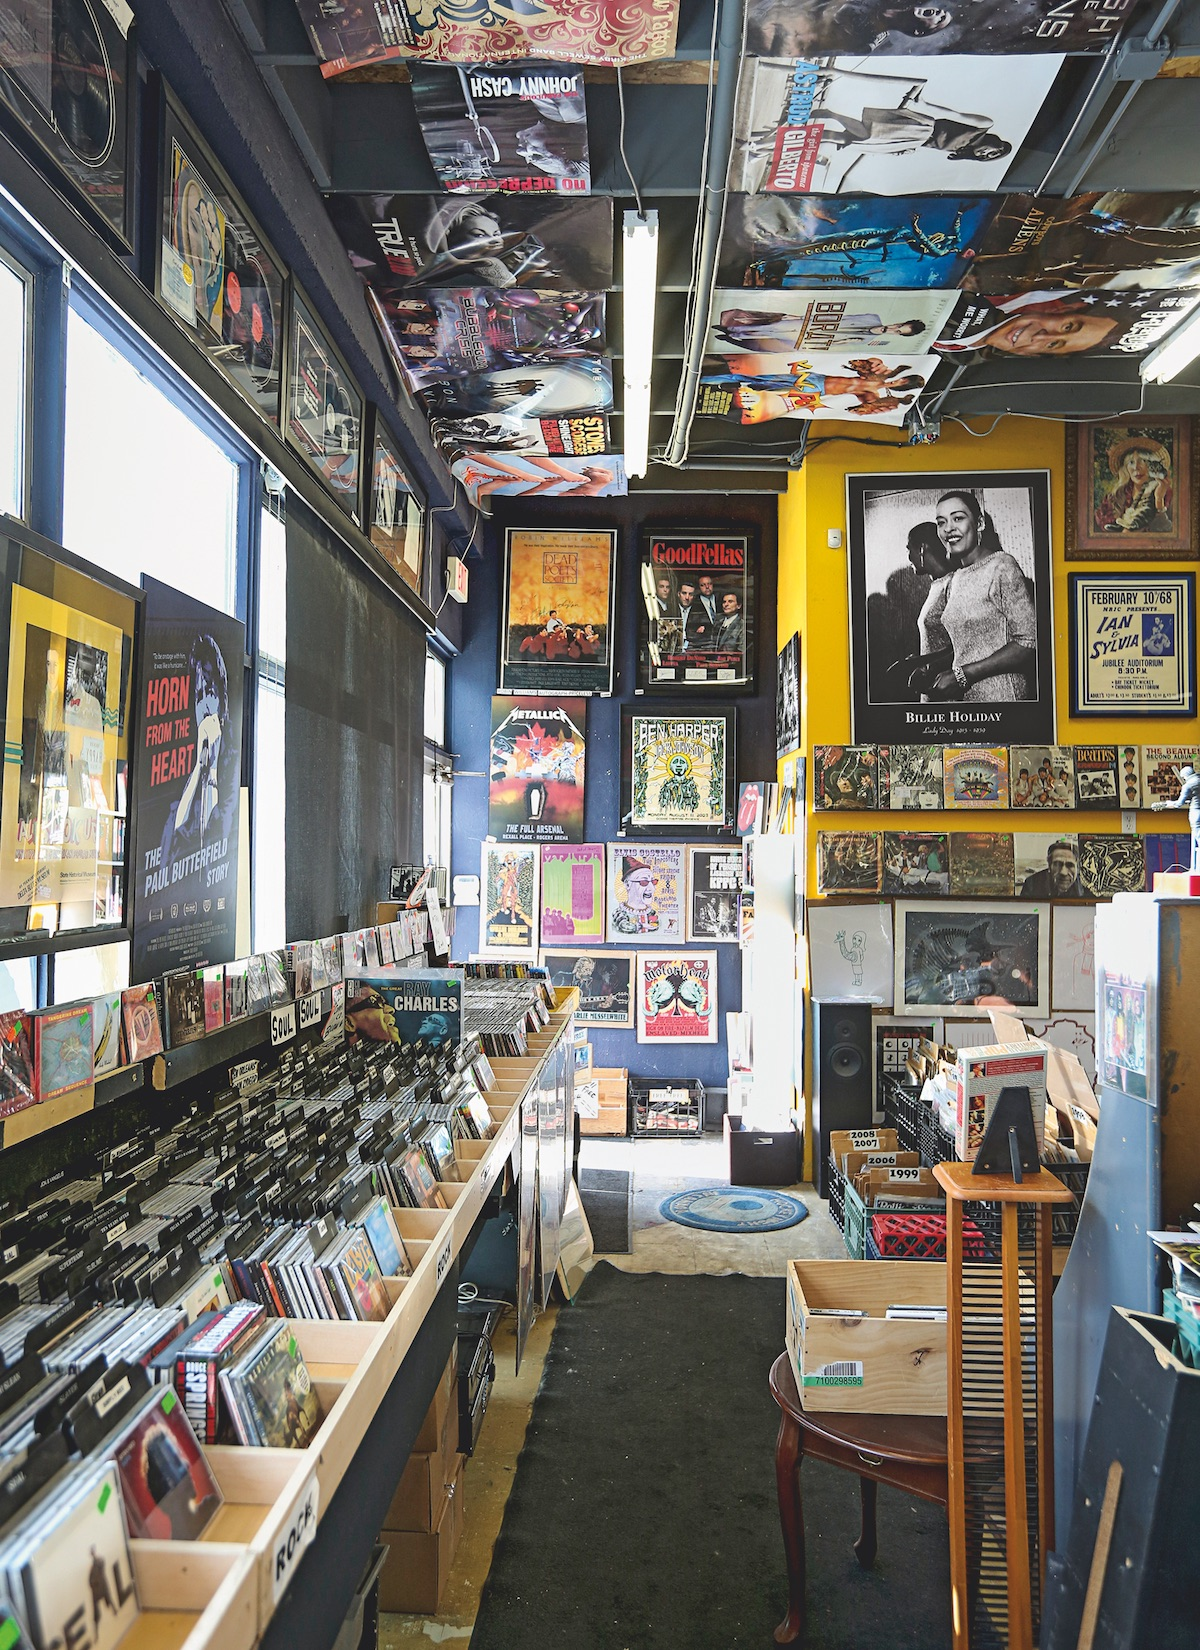 A total of 10,000 CDs, 40,000 records and 5,000 posters crammed into one place: Heritage Posters & Music. Photo by Christina Ryan, courtesy Emons Verlag GmbH.